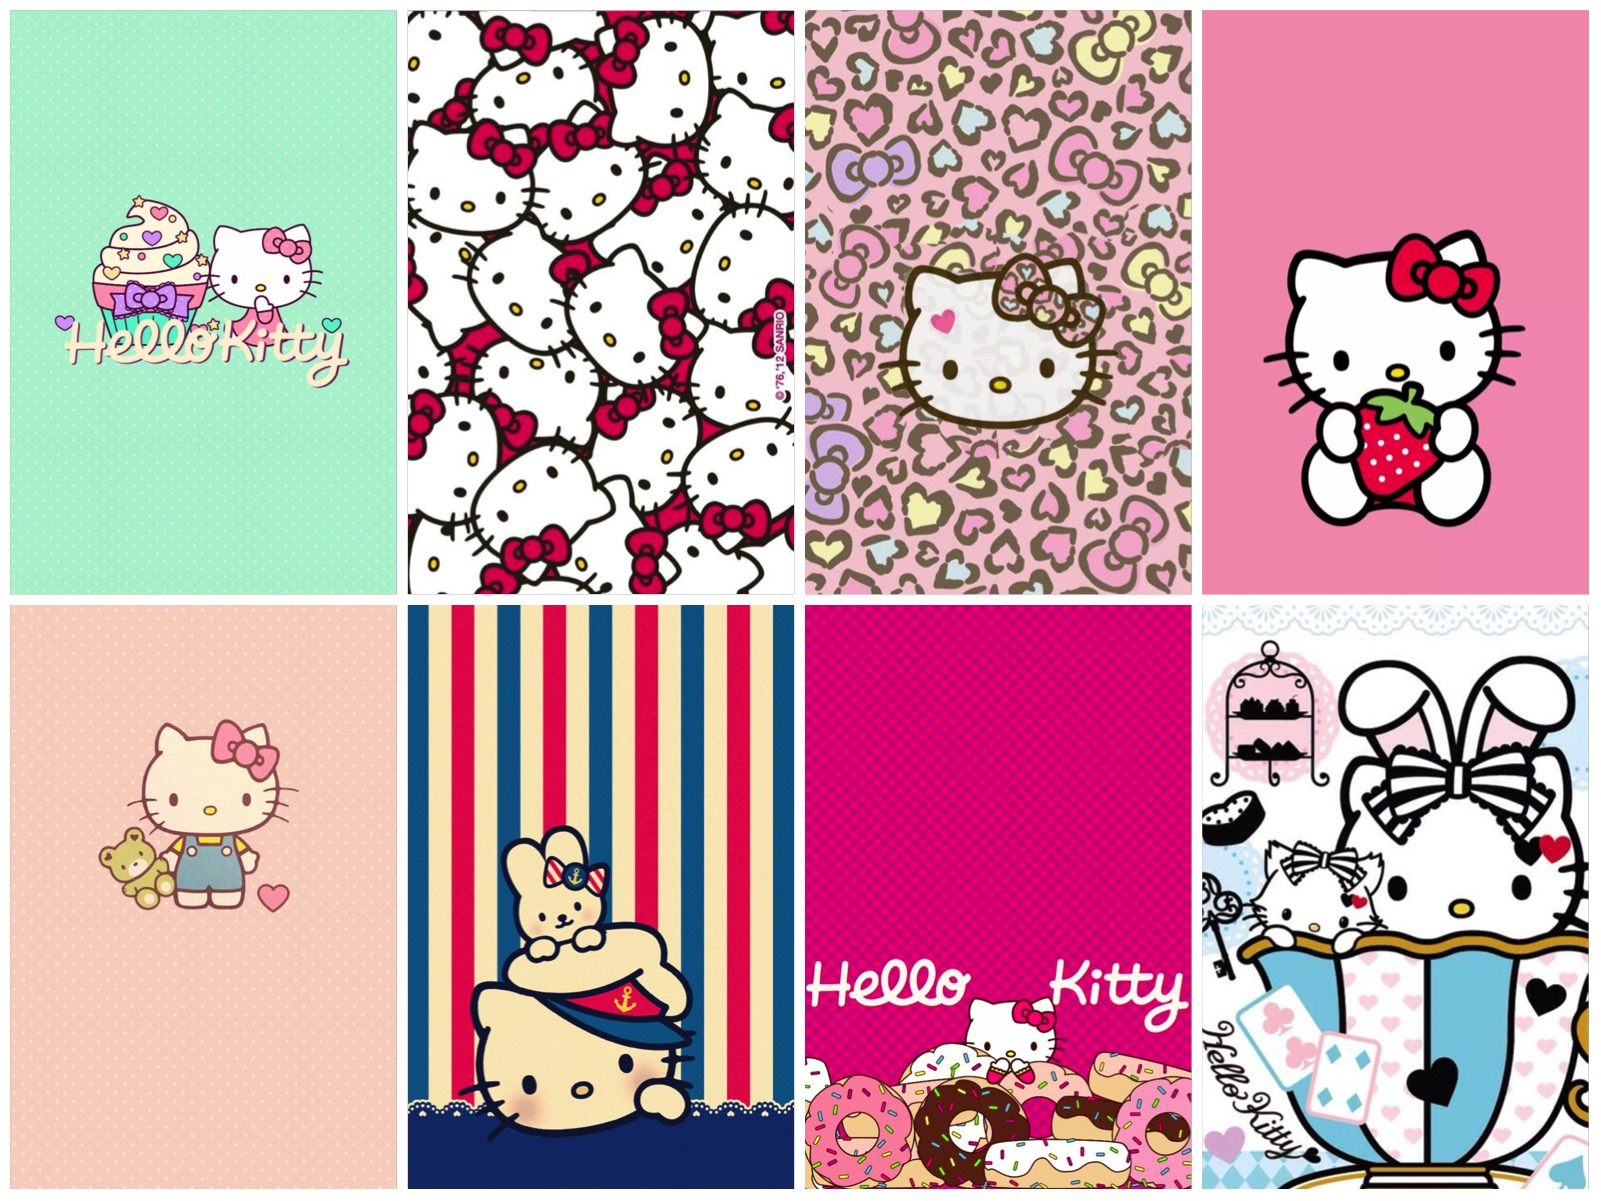 Download Hello Kitty Wallpaper Full Hd Wallpapers 1601x1201